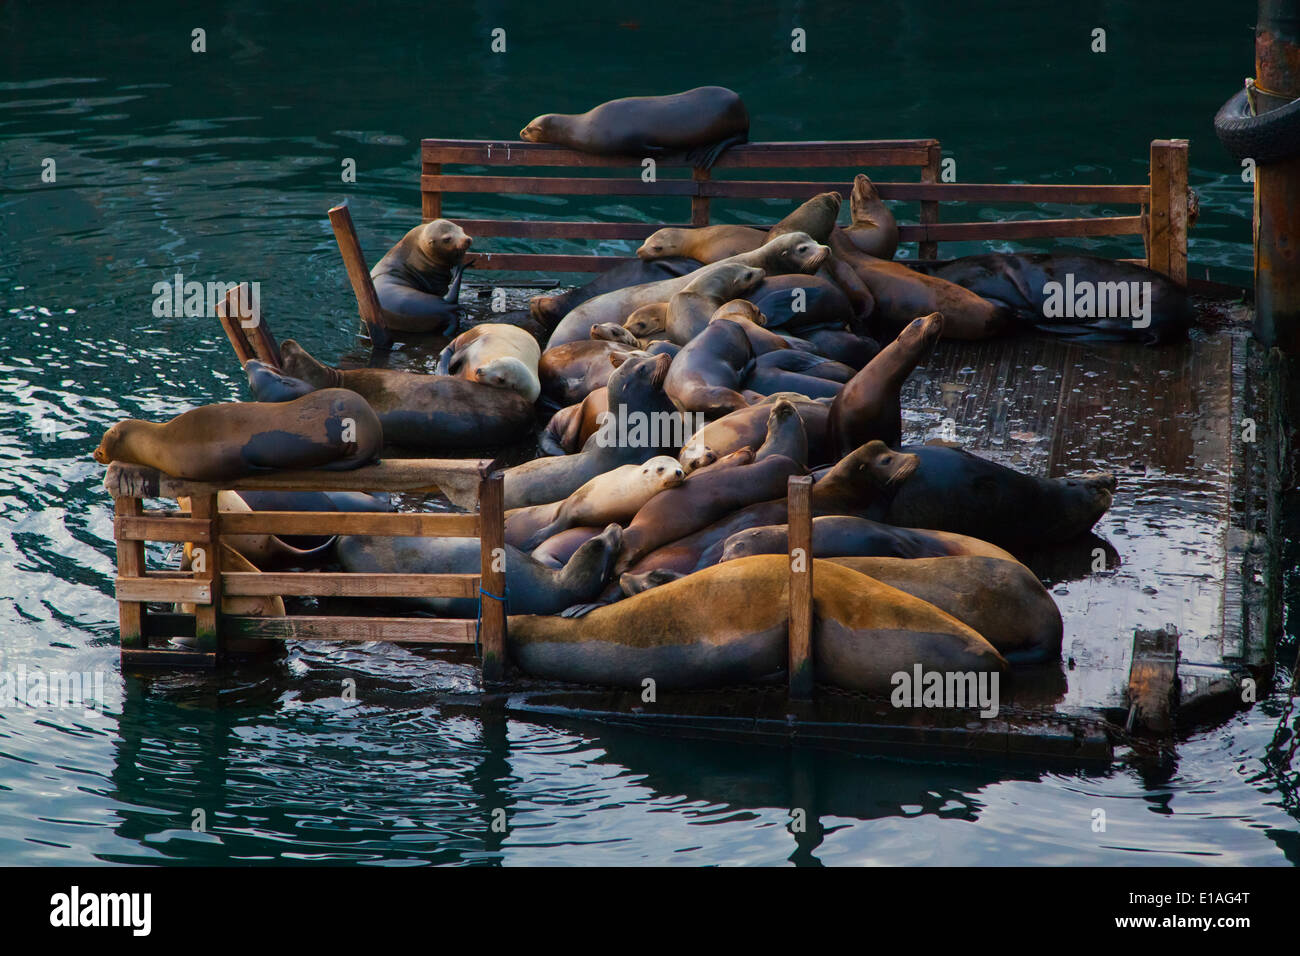 A group of STELLAR SEA LIONS (Eumetopias jubatus) rests on a platform at FISHERMANS WHARF - MONTEREY, CALIFORNIA - Stock Image